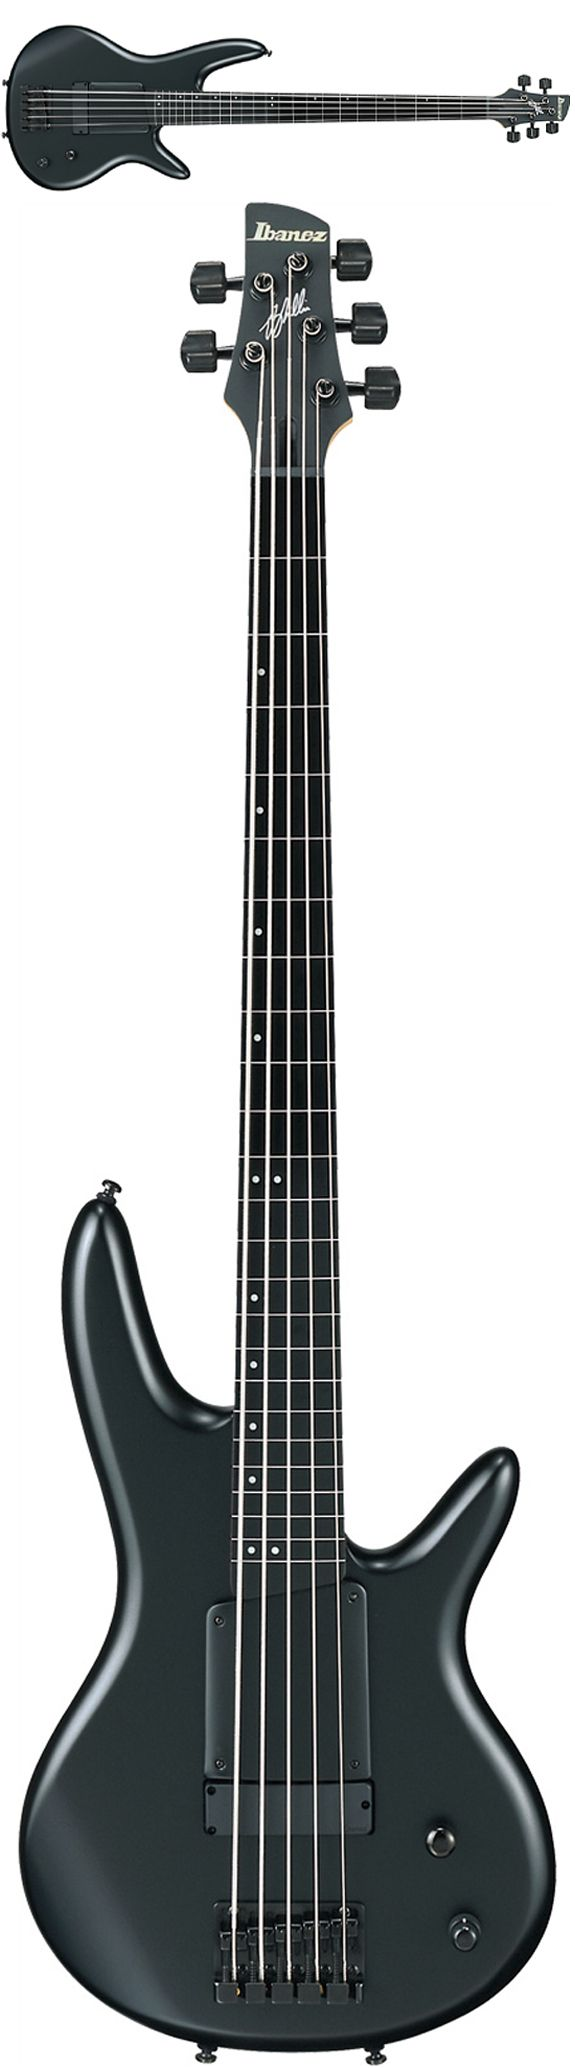 Ibanez GWB35 Gary Willis Fretless 5-String Bass Guitar in Black